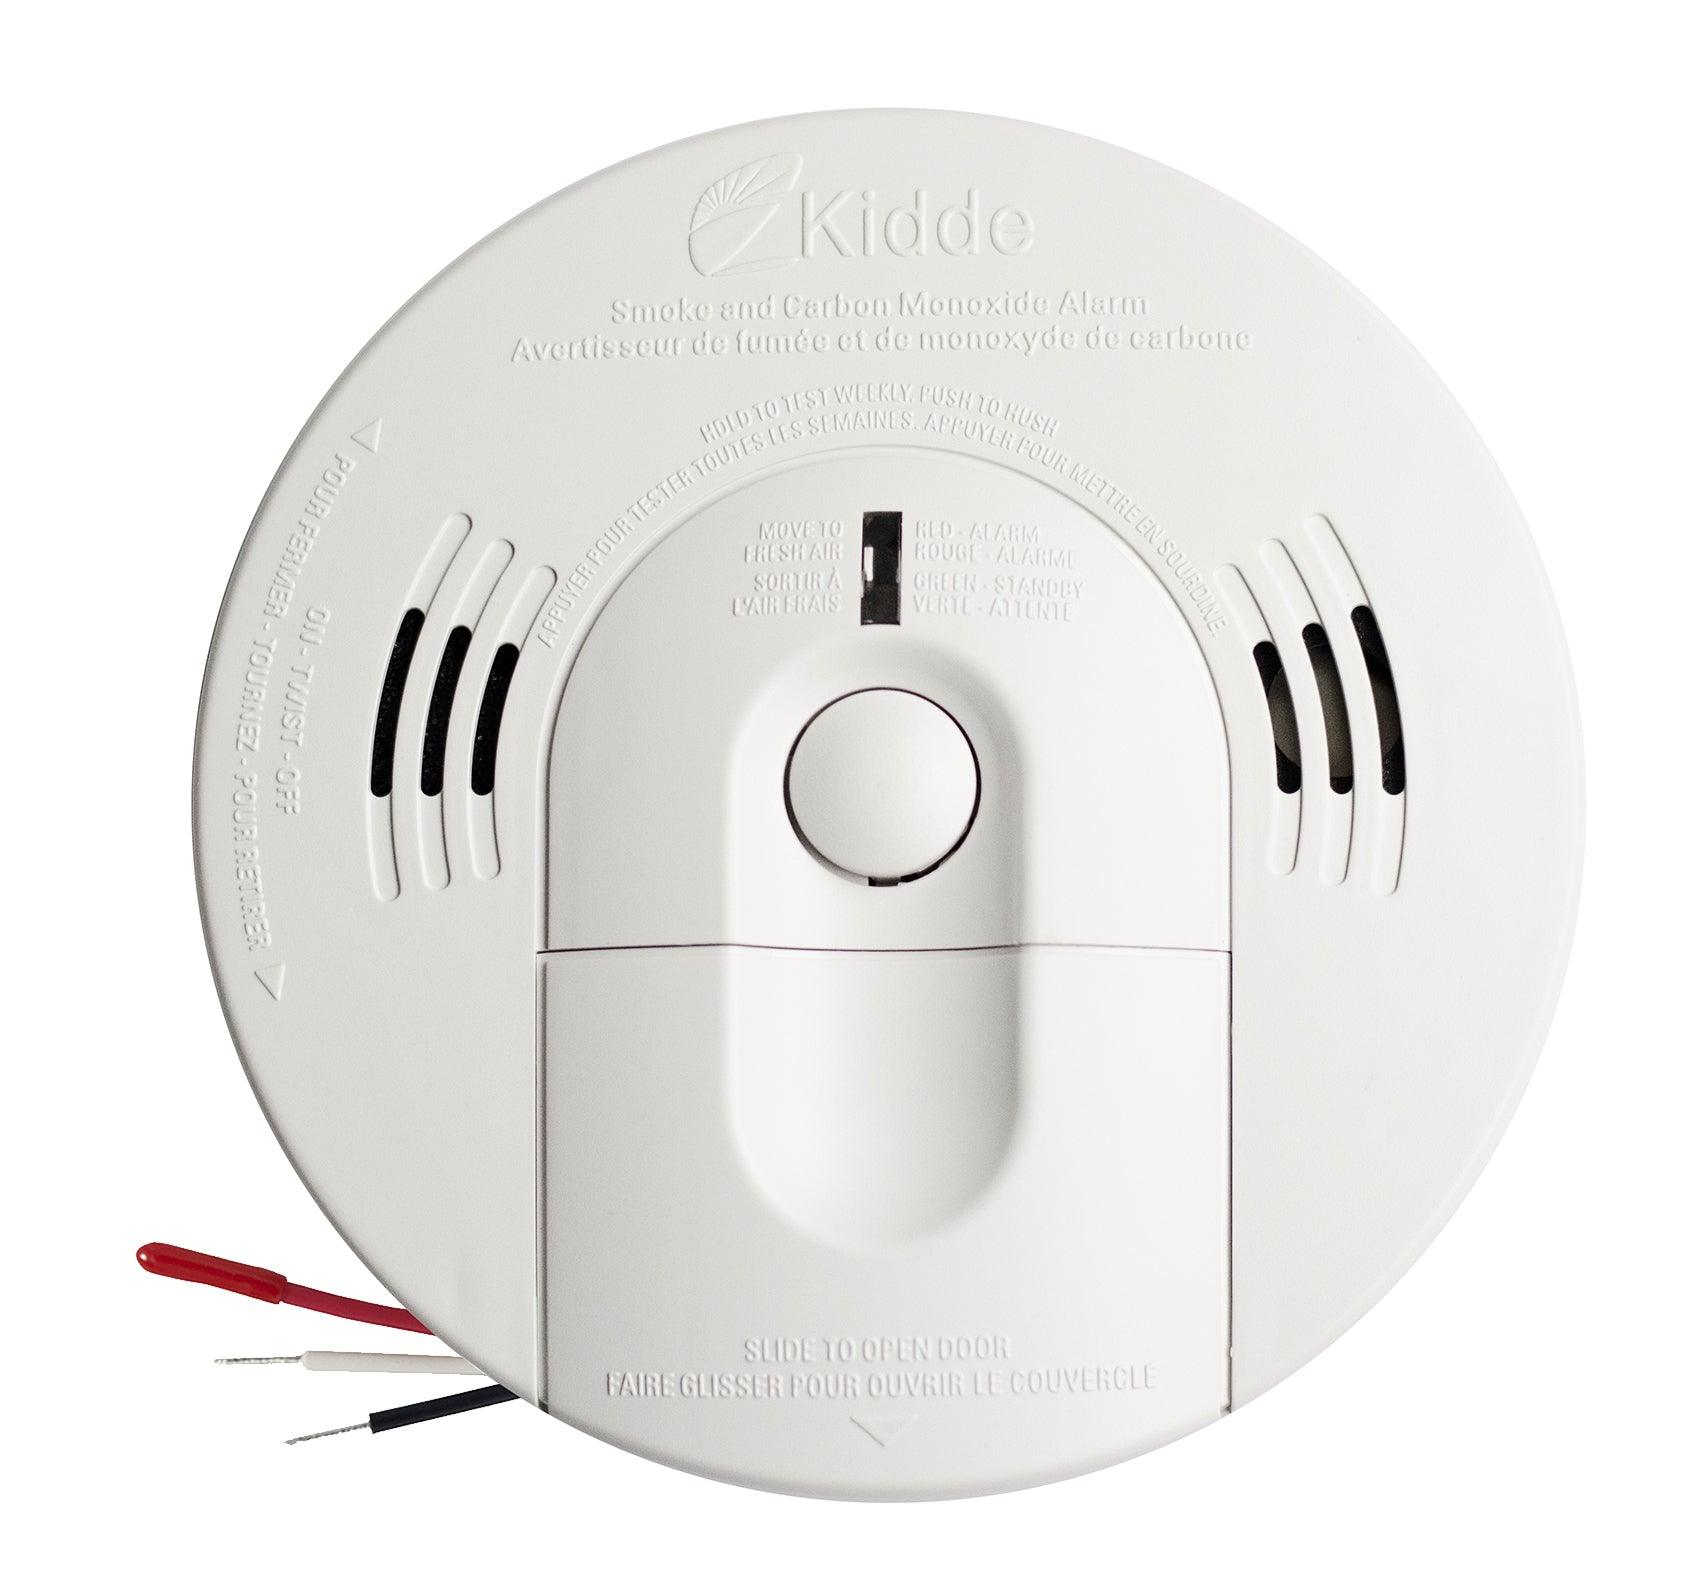 Kidde combination Smoke & Carbon Monoxide alarms offer protection from two deadly threats in one. These combination devices use breakthrough technology to offer a fast response to real fires, including smoldering and fast-flaming, as well as protect you from carbon monoxide and dramatically reduce the chance of nuisance alarms. SKU: KN-COSM-IBACA, UPC: 04787110119